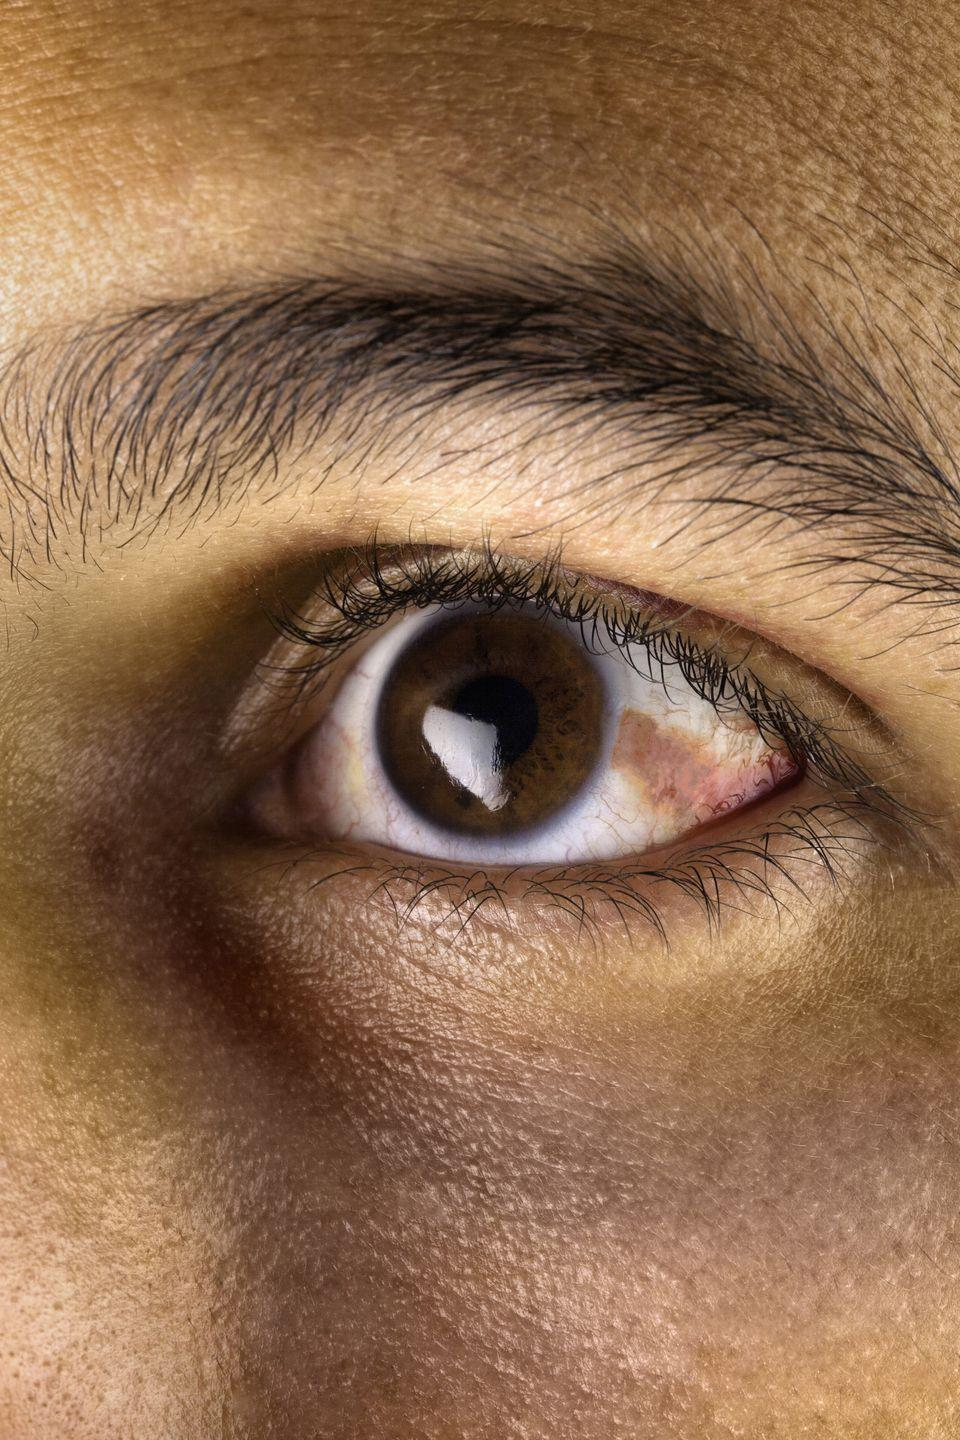 """<p>Some people develop a yellowish patch or bump on the whites to the side of their iris, called a pinguecula. """"A small percentage of these are pre-cancerous, but usually they are not,"""" Dr. Herz says. What causes them? """"They are most often seen in people who spend a lot of time in <a rel=""""nofollow noopener"""" href=""""https://www.womansday.com/health-fitness/wellness/g22509737/signs-of-heatstroke/"""" target=""""_blank"""" data-ylk=""""slk:the sun"""" class=""""link rapid-noclick-resp"""">the sun</a> and are similar to a callus on the skin,"""" she adds. But a <a rel=""""nofollow noopener"""" href=""""https://www.ncbi.nlm.nih.gov/pmc/articles/PMC3872277/#b68-opth-8-087"""" target=""""_blank"""" data-ylk=""""slk:December 2013 study"""" class=""""link rapid-noclick-resp"""">December 2013 study</a> looked at ultraviolet light's effects on the eye and found that wearing specific lenses may protect your peepers from sun damage, so talk to your ophthalmologist if you start seeing the patches.</p>"""